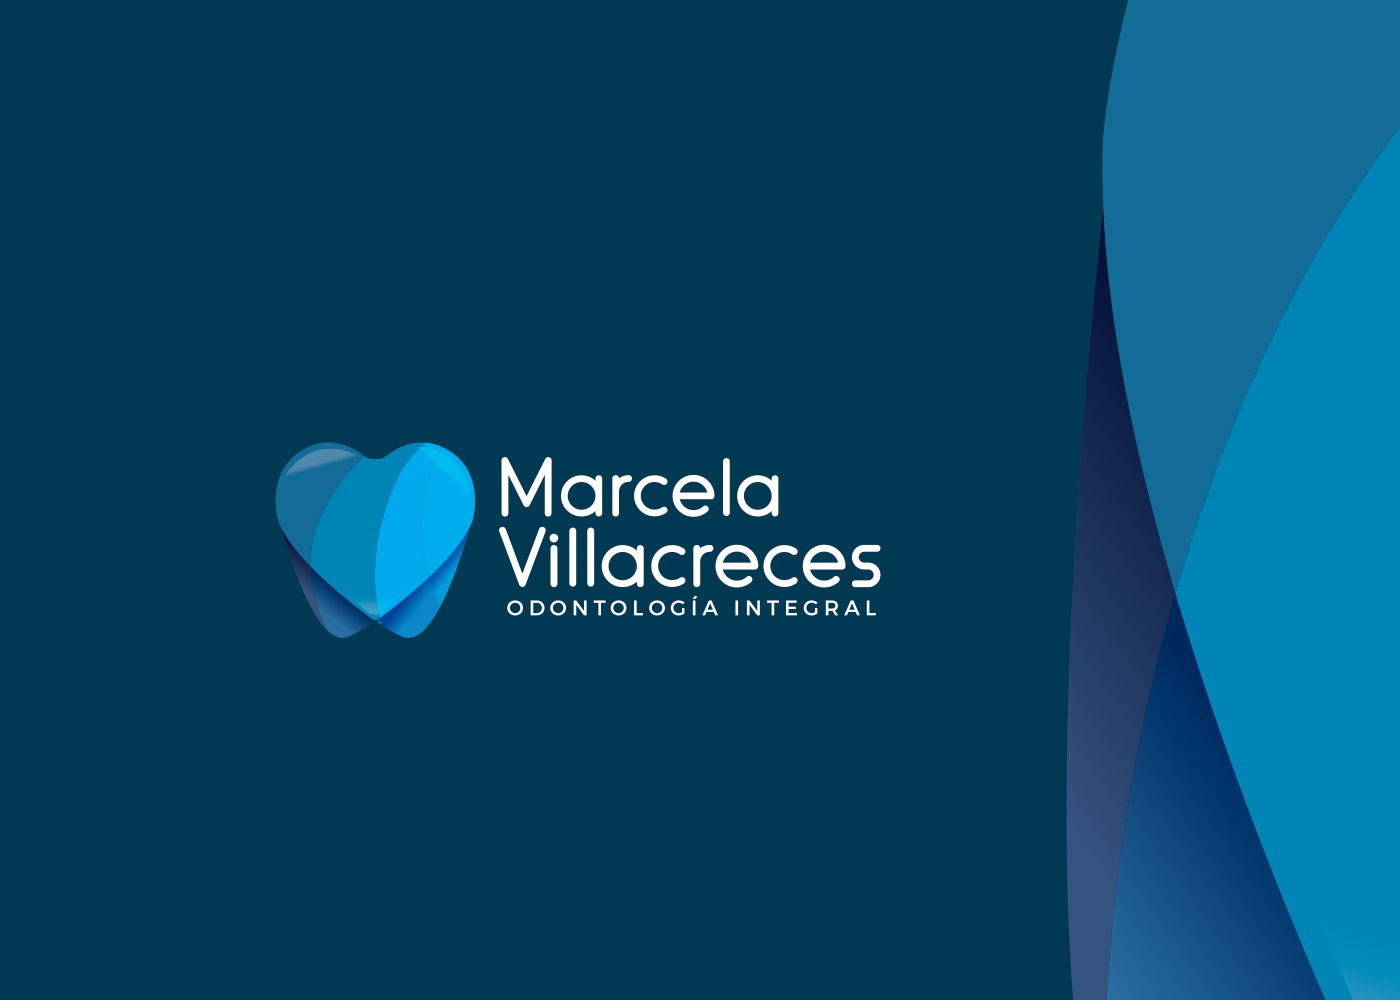 marcela-villacreces-2